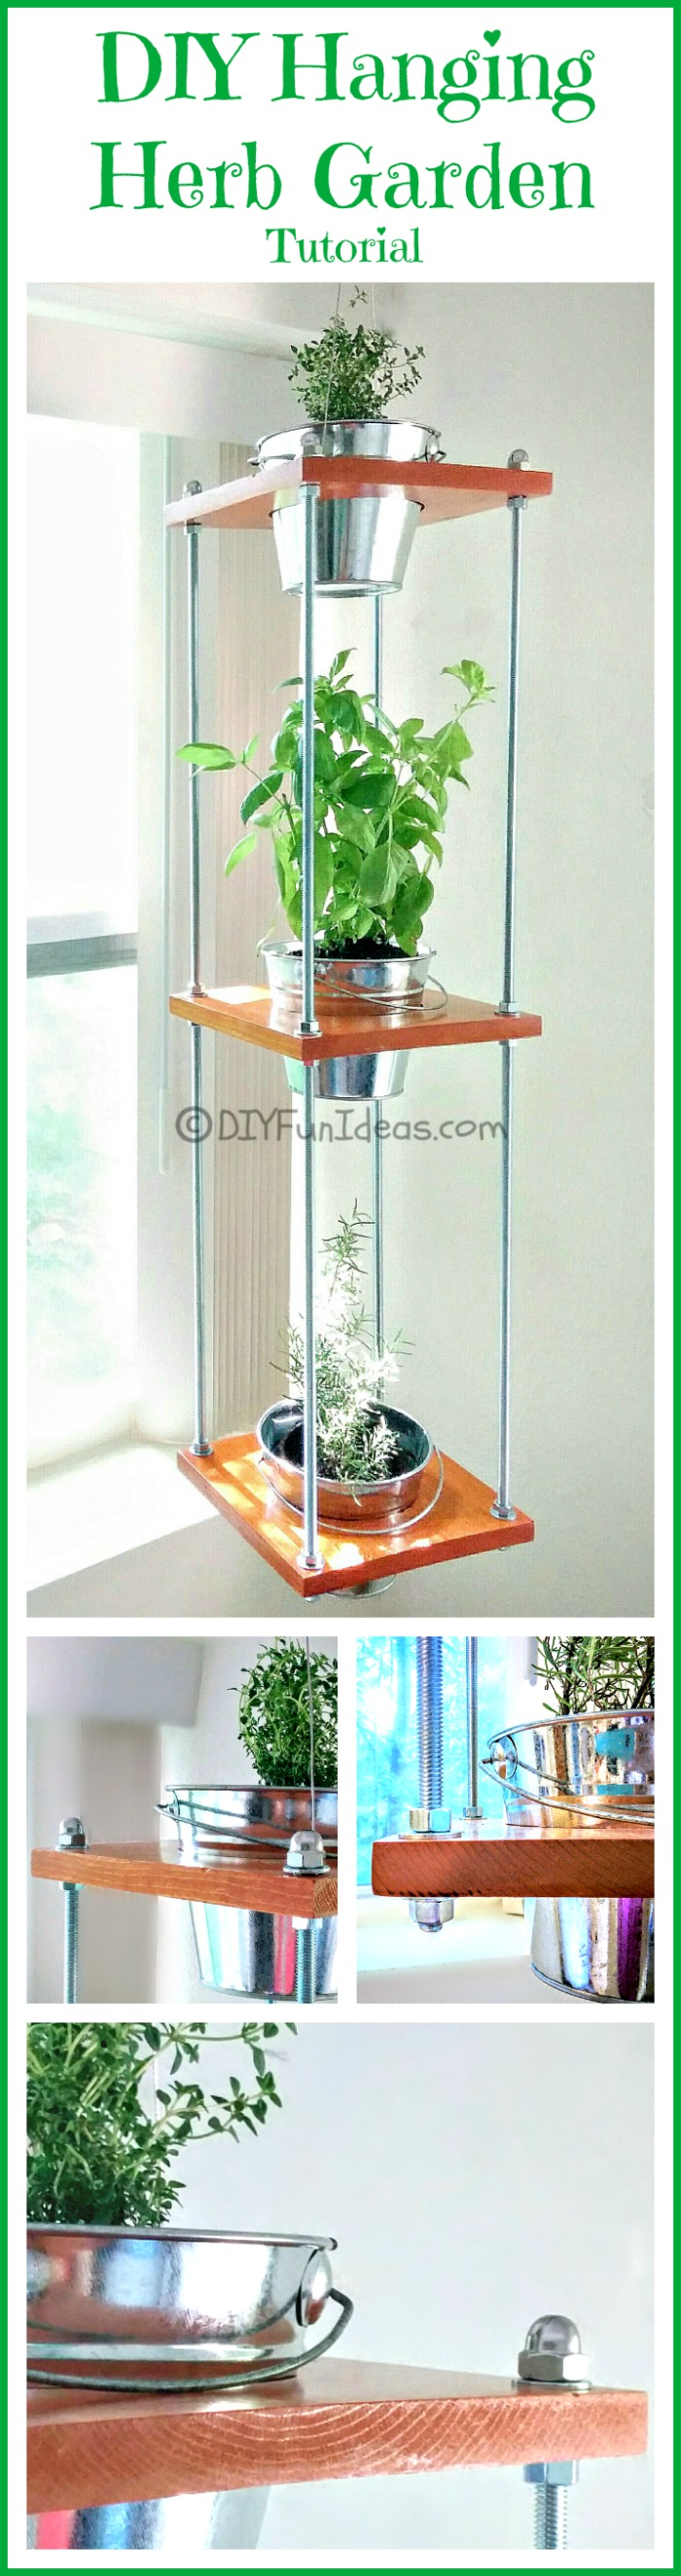 Diy hanging herb gardendustrial style do it yourself fun ideas easy diy hanging herb gardendustrial style solutioingenieria Image collections